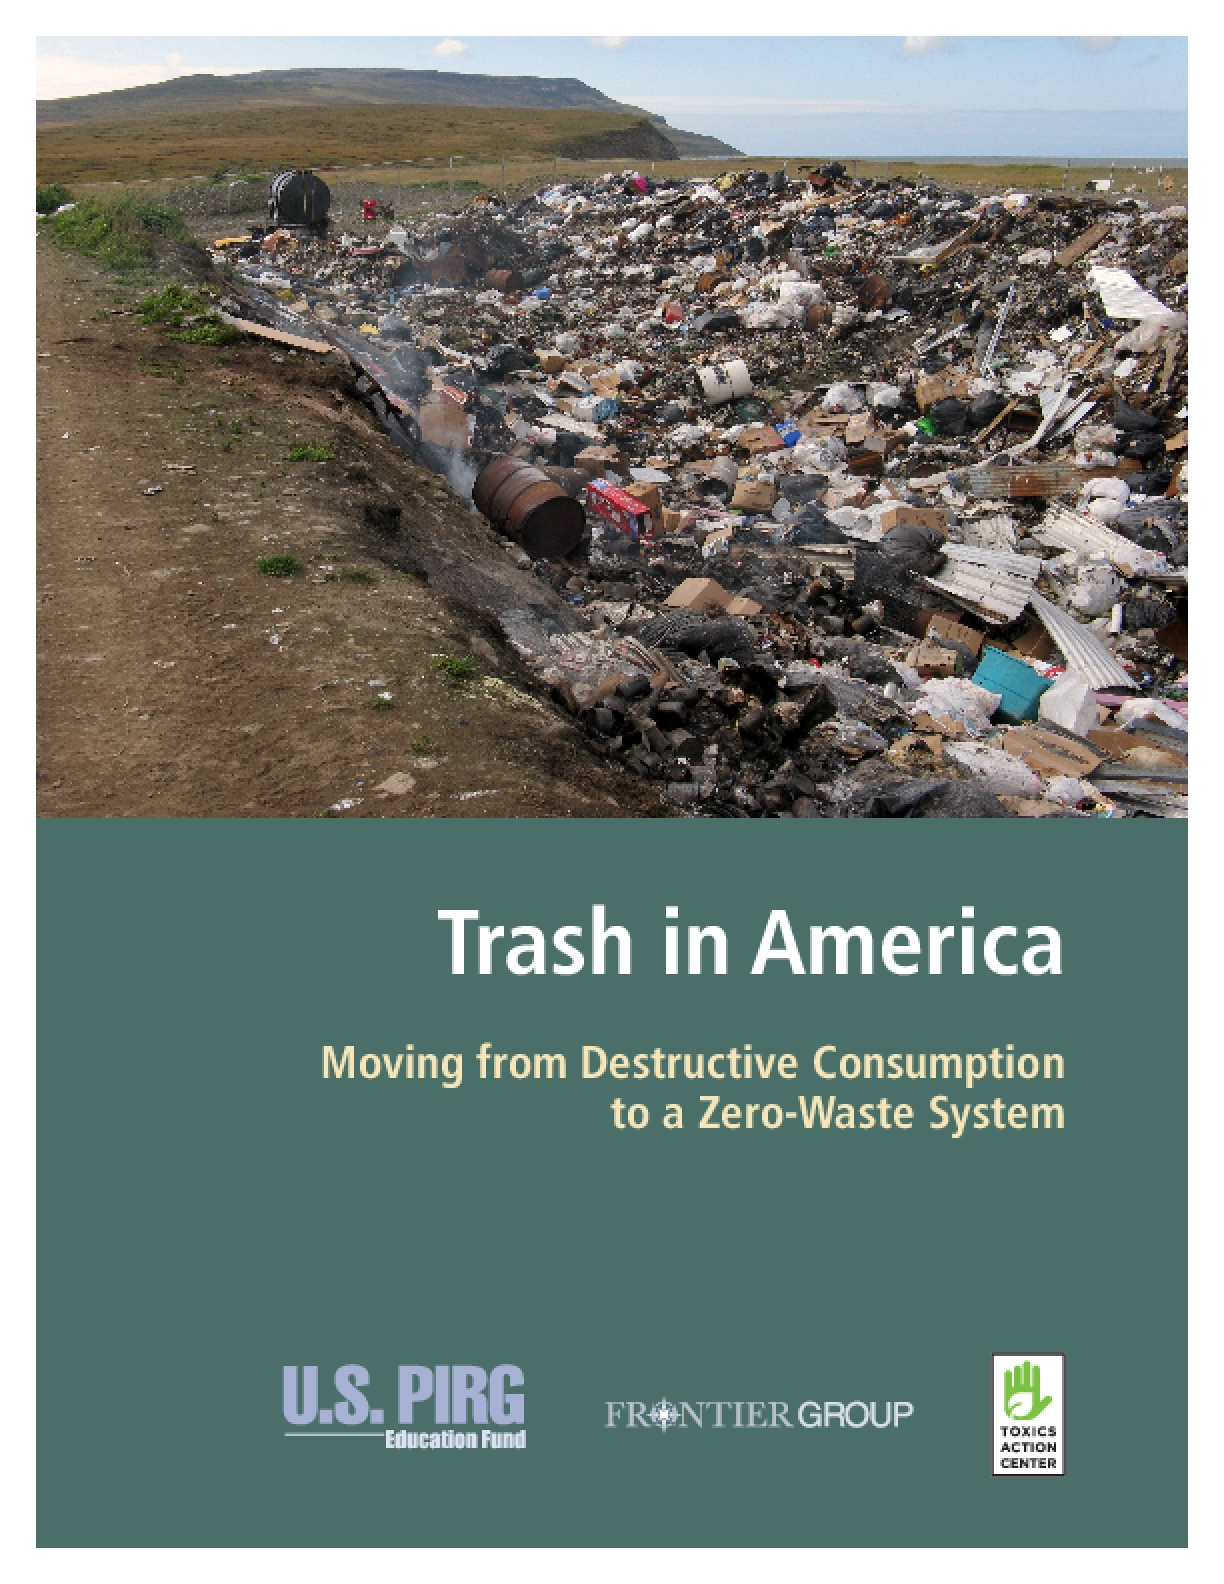 Trash in America: Moving from Destructive Consumption to a Zero-Waste System